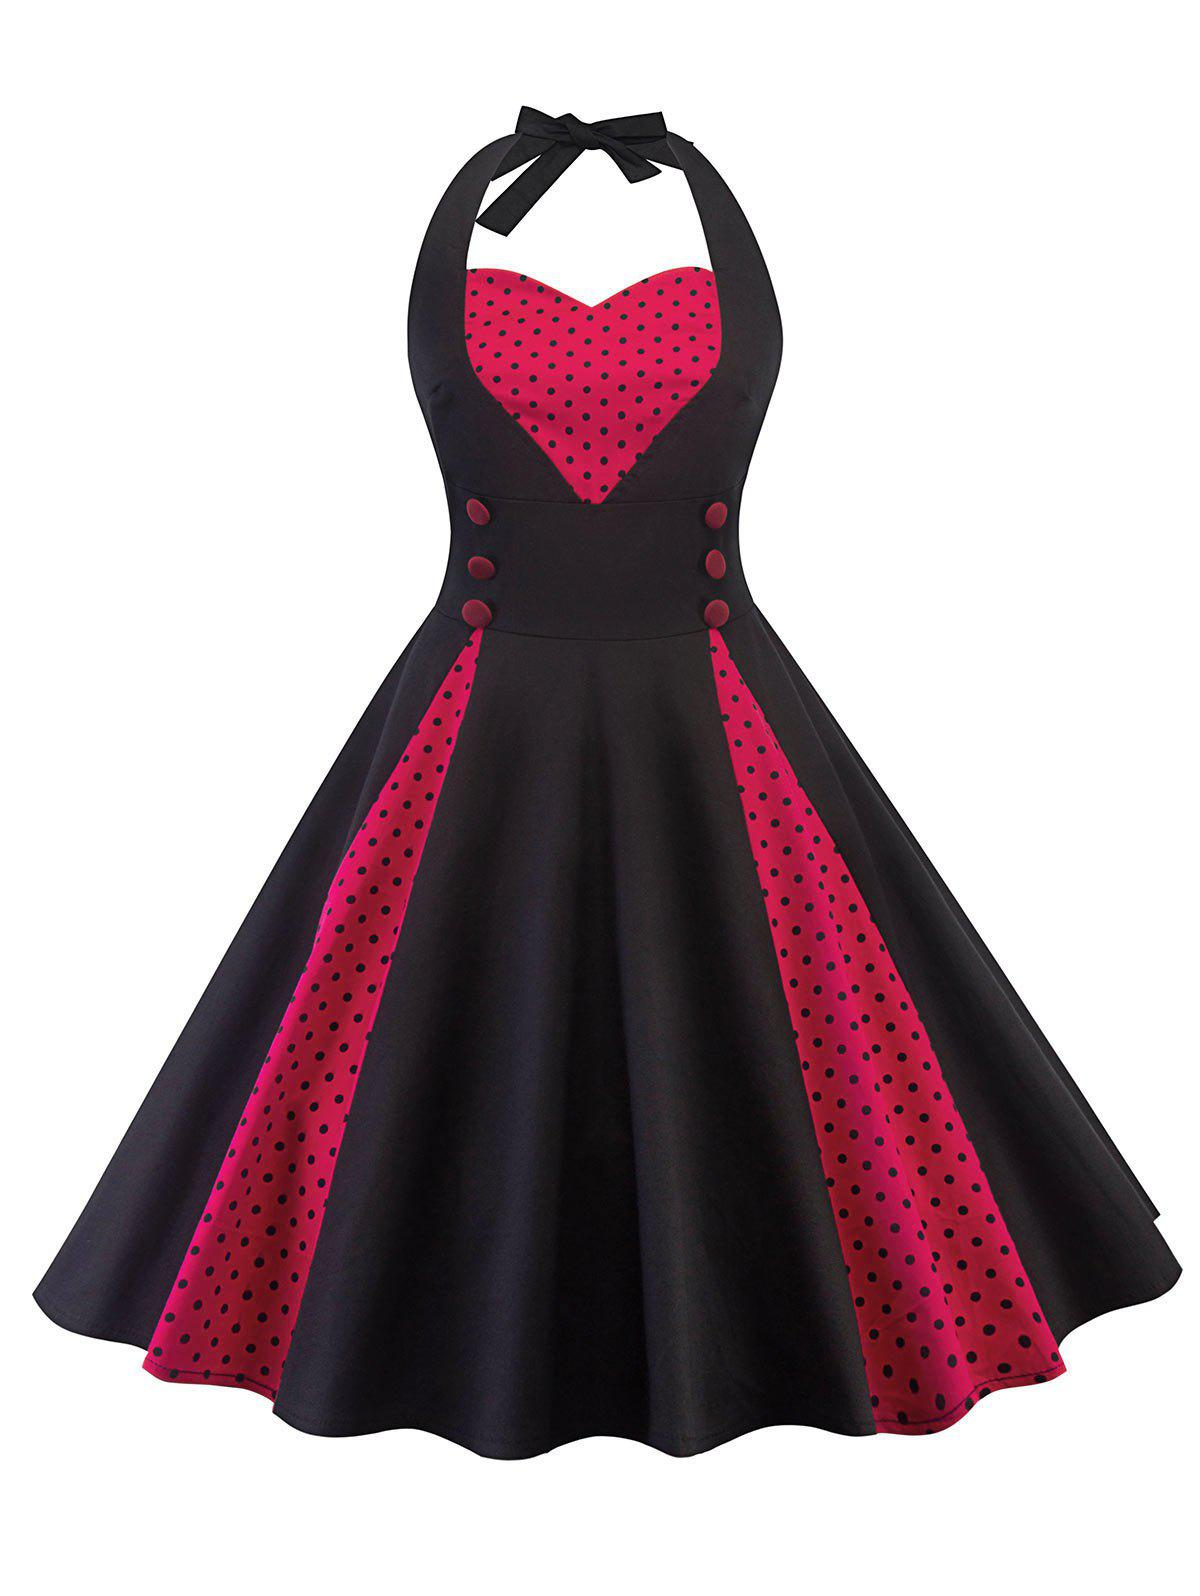 Chic Polka Dot Insert Halter Neck Vintage Dress